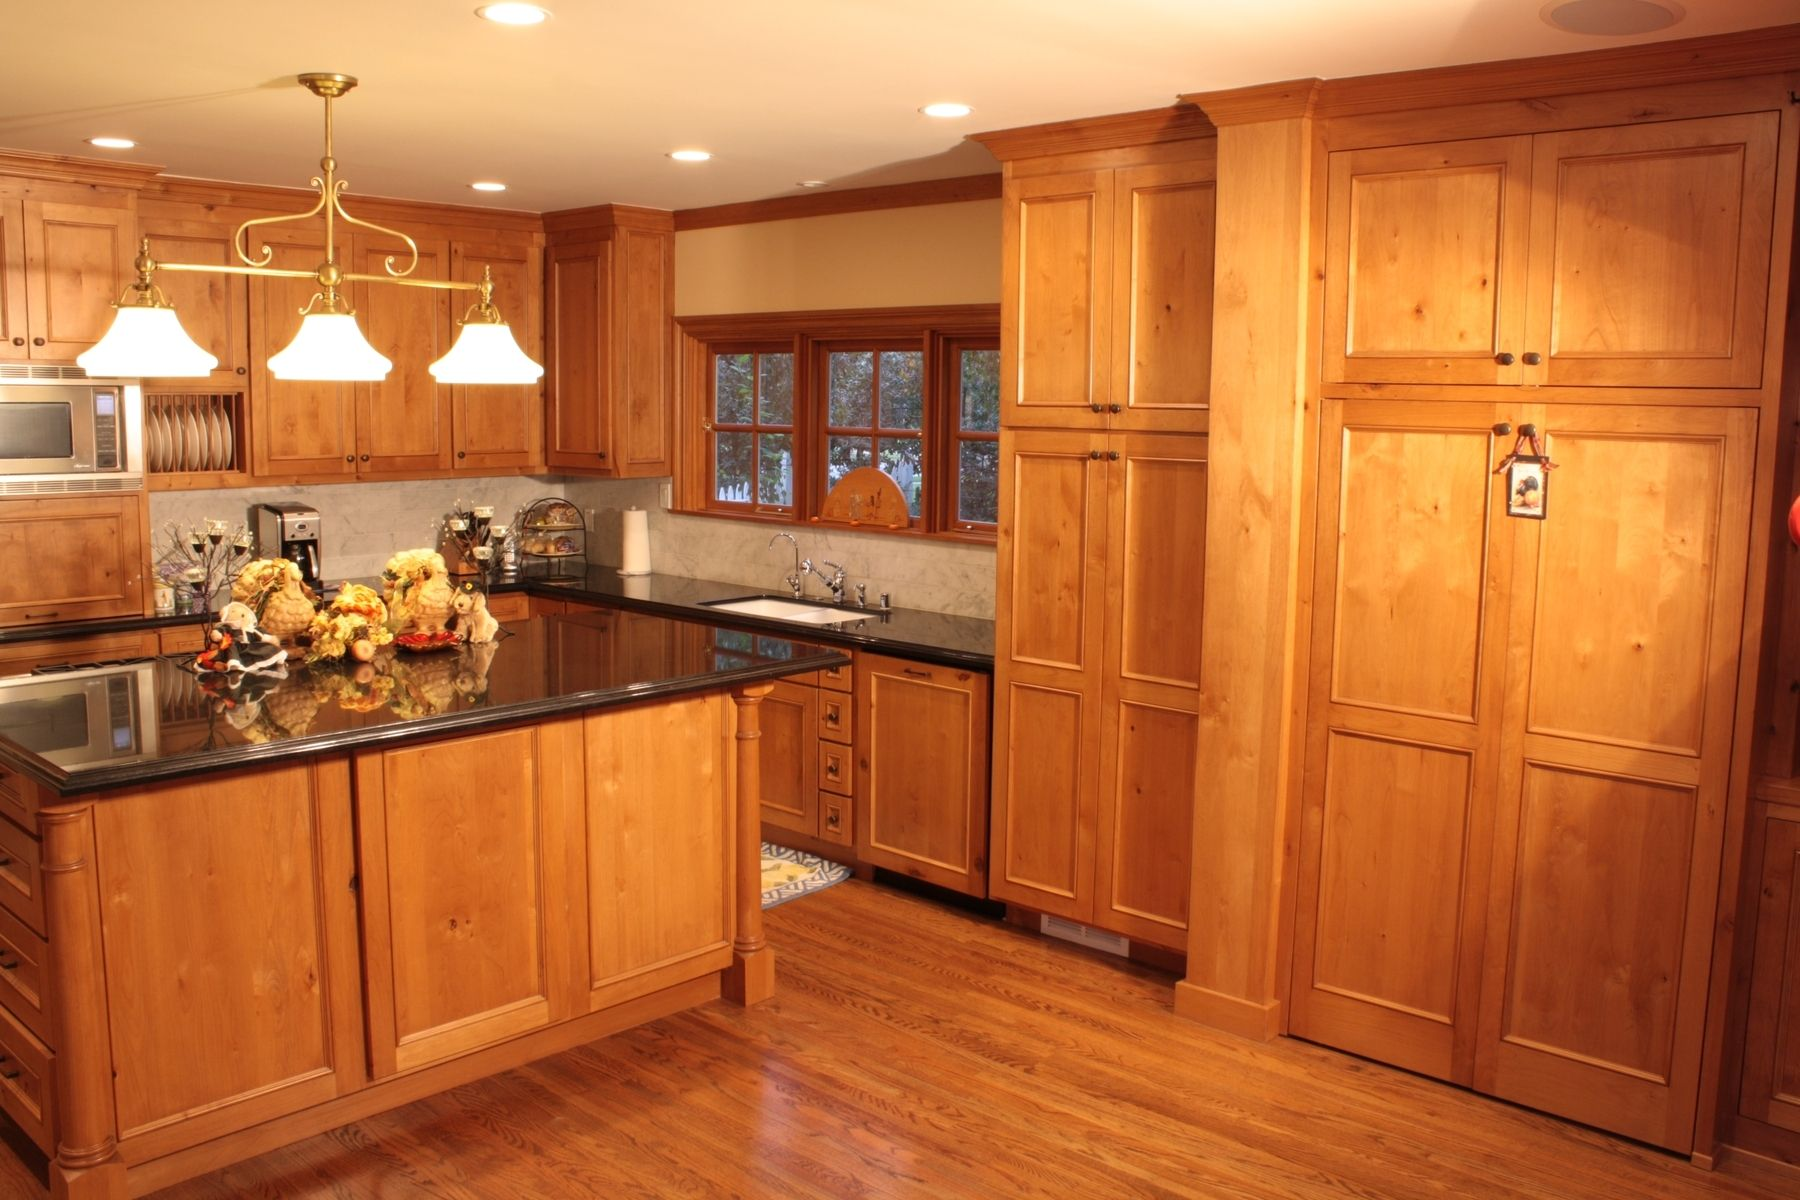 island inspired living room furniture jbl lsr305 hand made knotty pine kitchen and entertainment center by ...